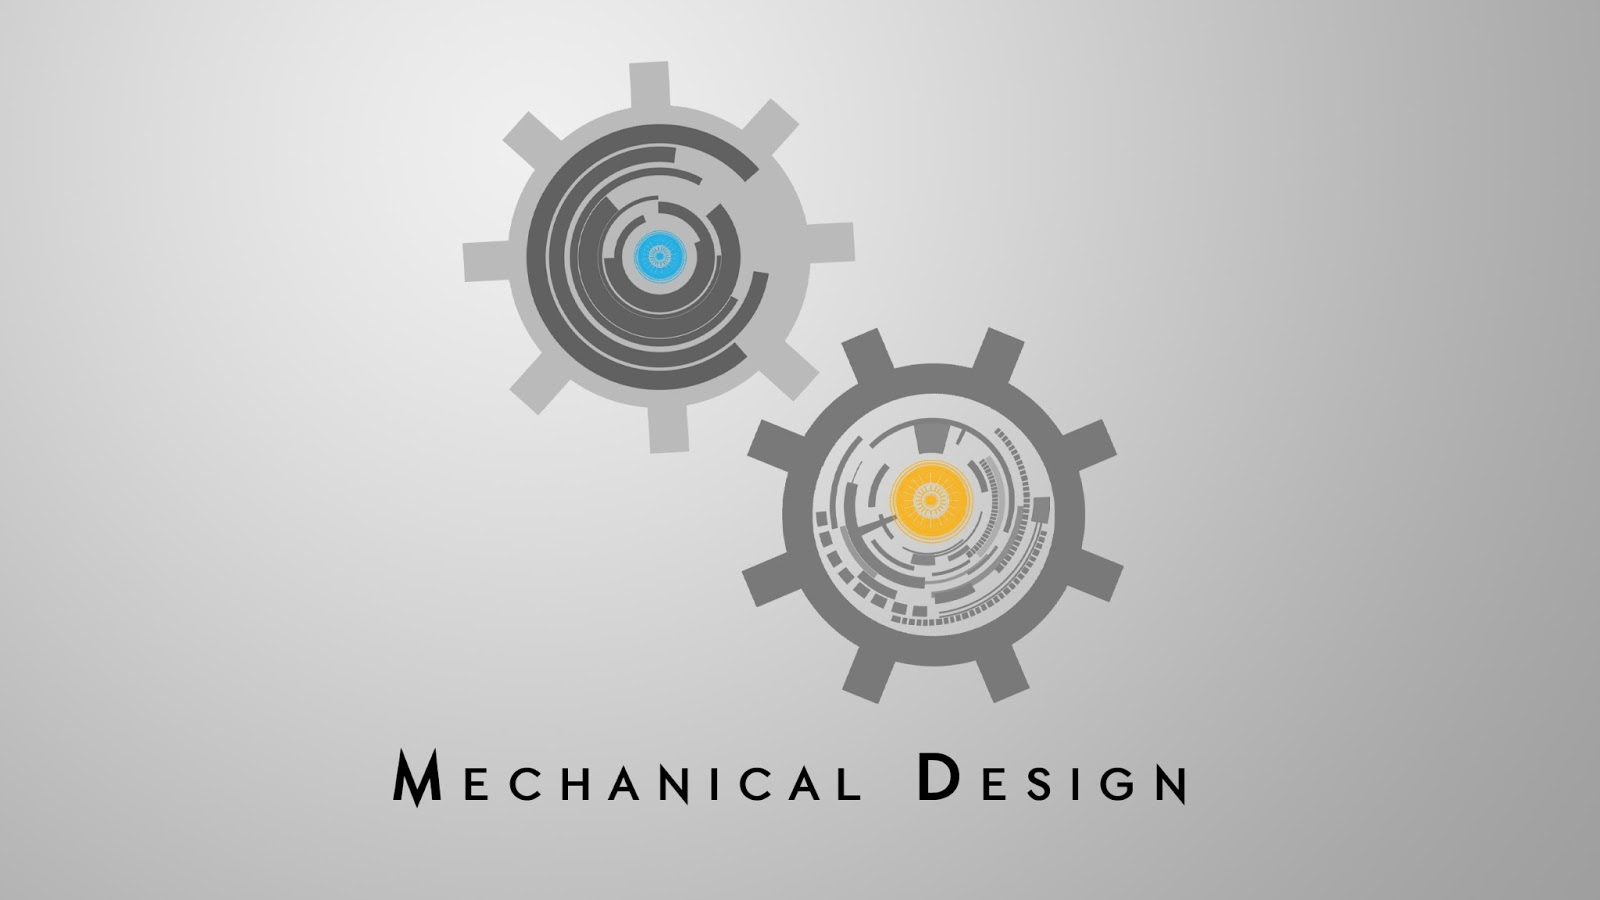 Mechanical design logansport in llc